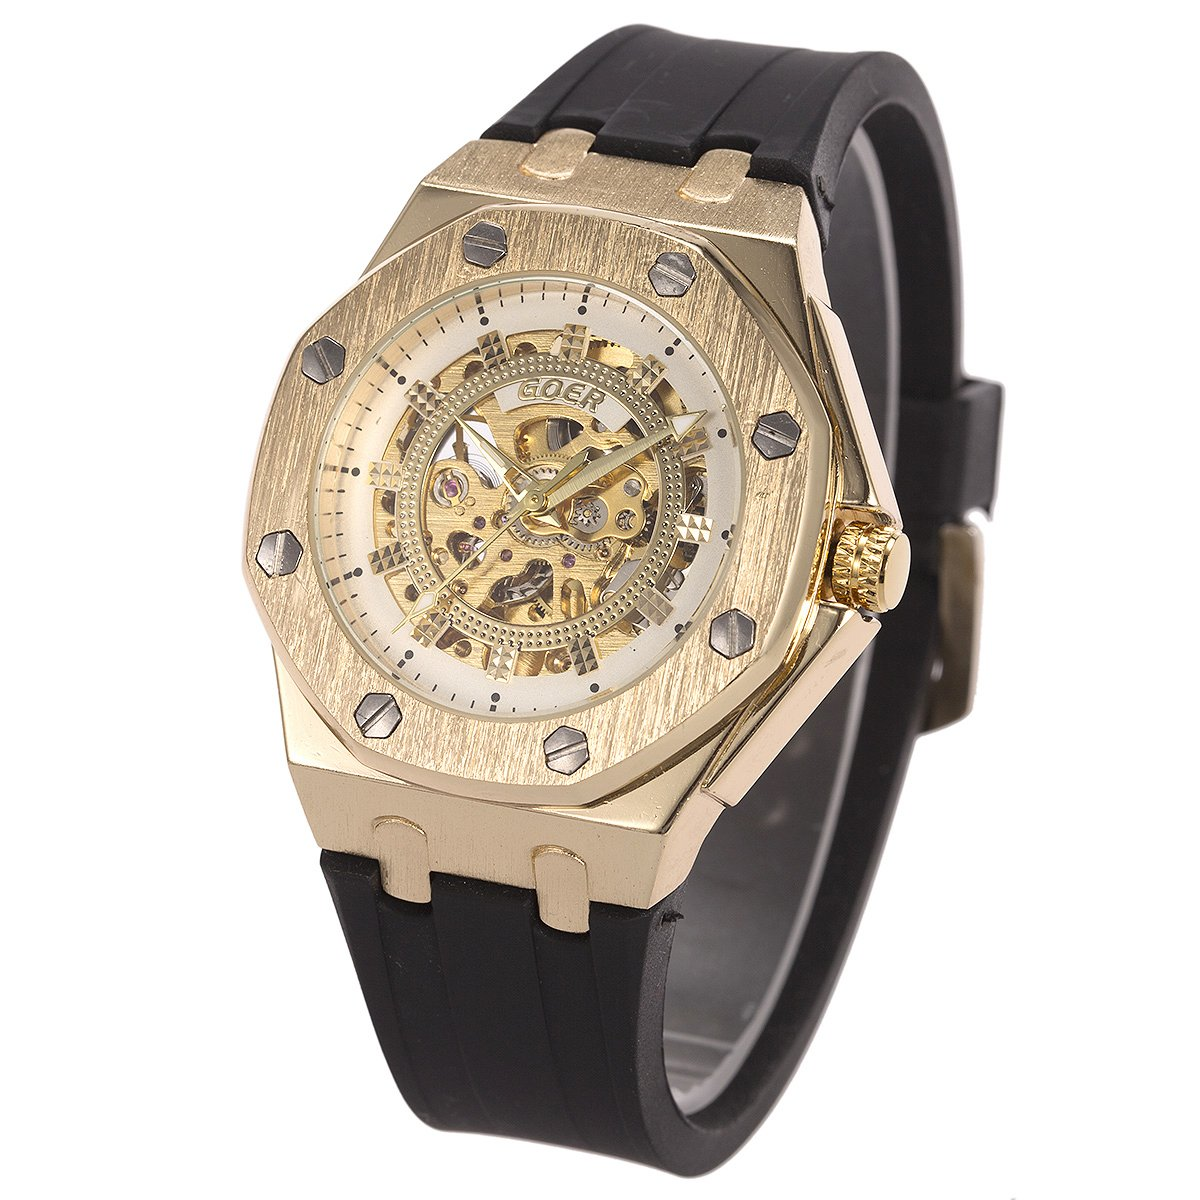 ManChDa Automatic Mechanical Skeleton Mens Wrist Watch Stainless Steel Rubber Belt Golden